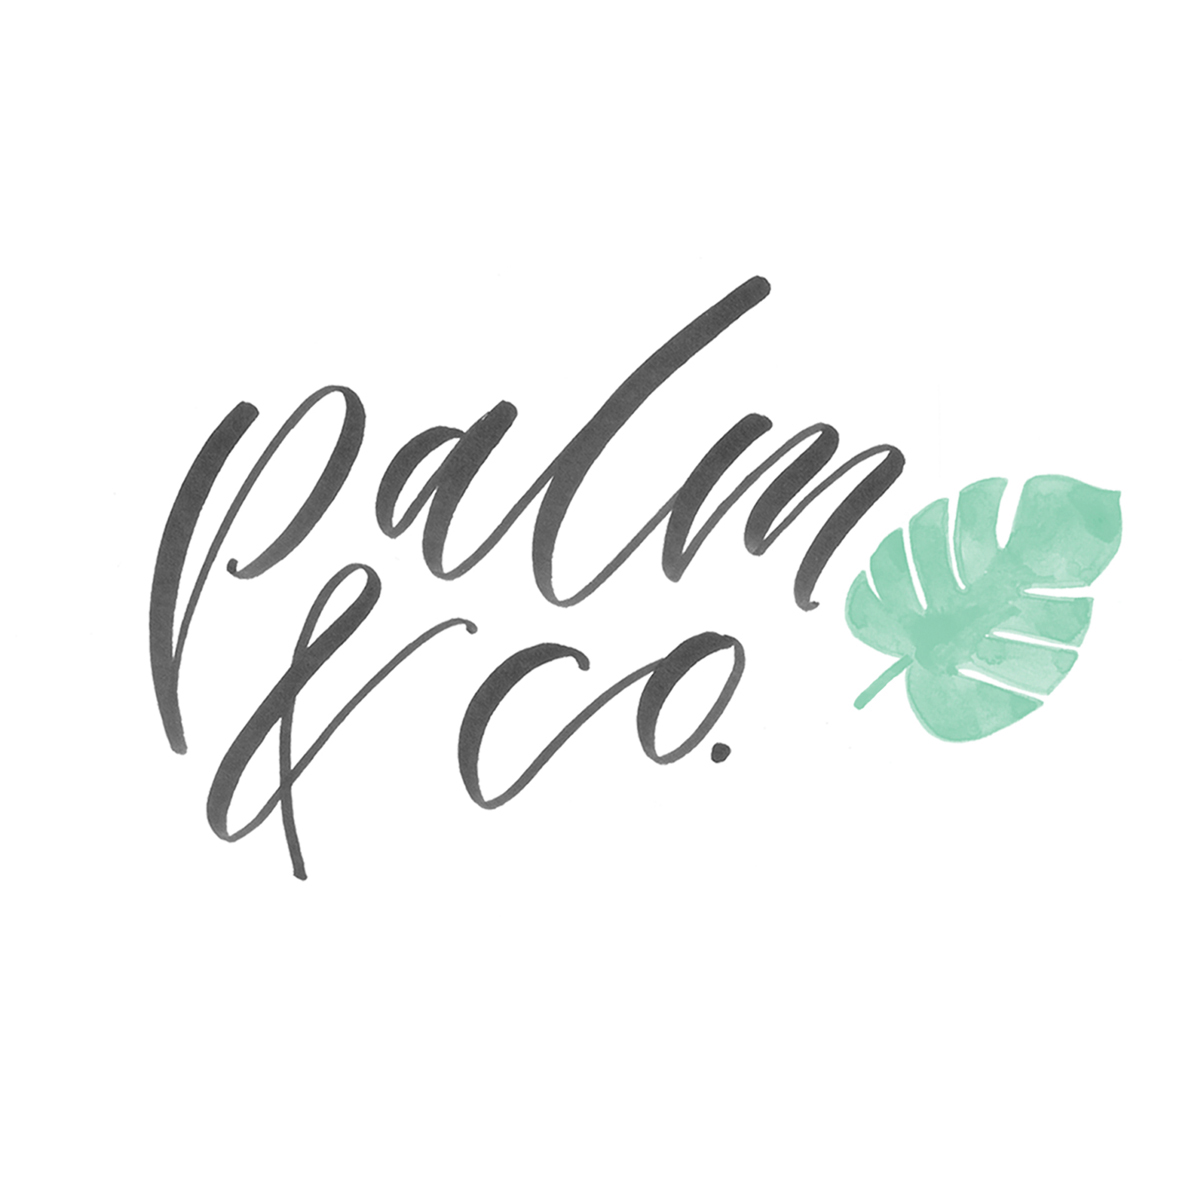 Palm & Co. hand-lettered logo